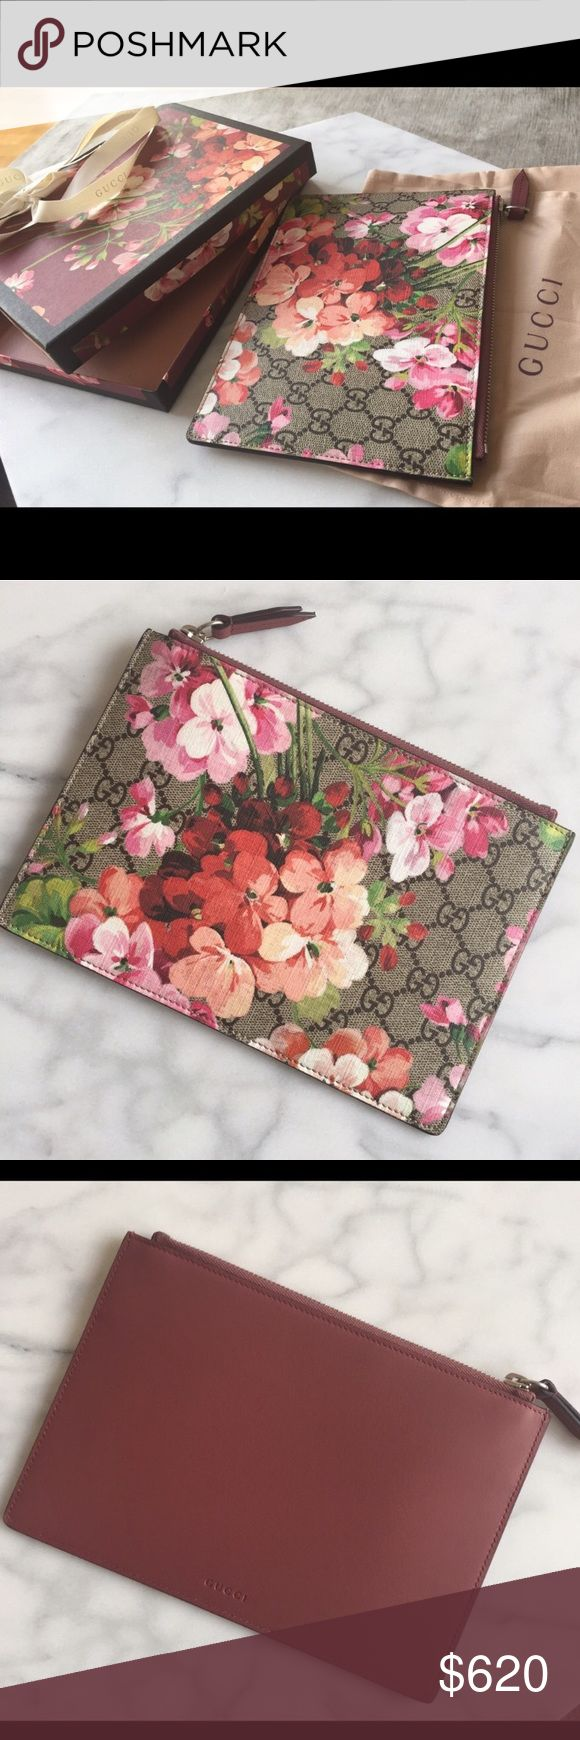 """Beautiful Gucci Bloom Pouch / clutch Brand new authentic and immaculate. Absolutely beautiful case/ pouch in Blooms print on GG Supreme canvas. One side is GG Blooms print the other is plain merlot color. Approx measurements 6"""" wide 8.5"""" long it is envelope pouch style. Comes with original pretty Box and ribbon and dust bag. Price is firm. No returns. Gucci Bags Clutches & Wristlets"""